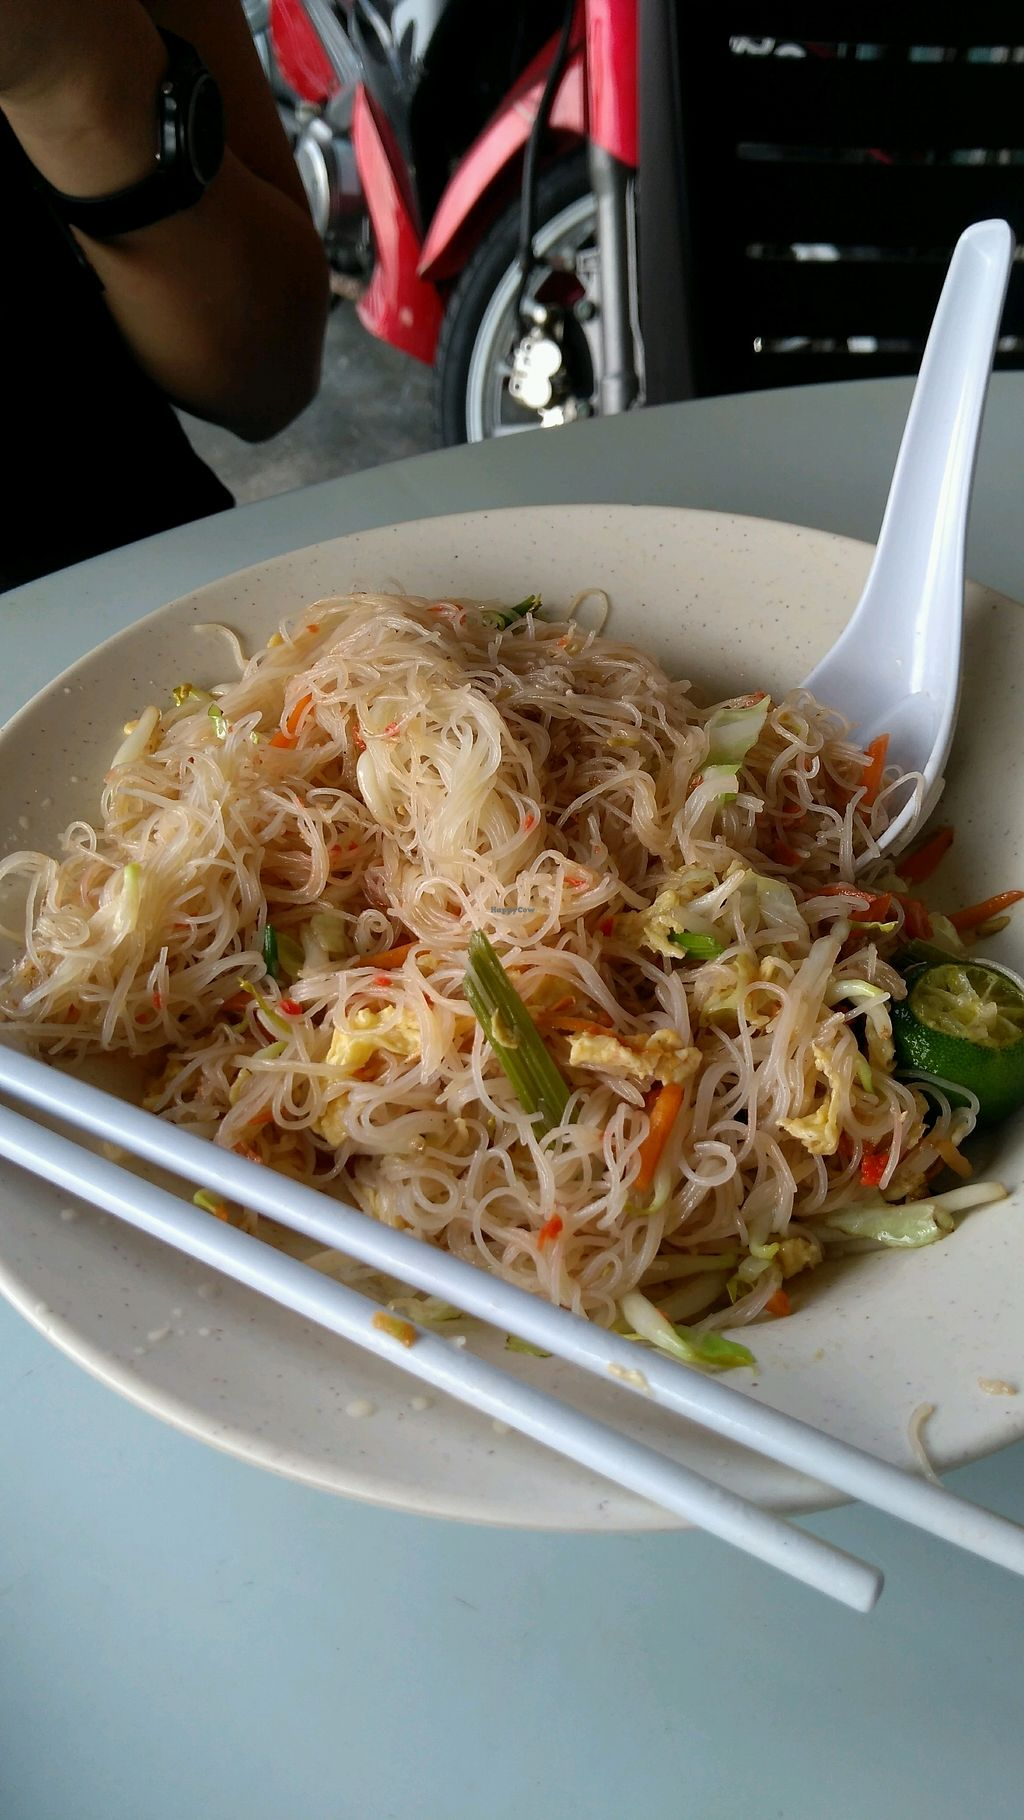 """Photo of Chow's Family Vegetarian Restaurant  by <a href=""""/members/profile/mixo7978"""">mixo7978</a> <br/>Sin Chow Fried Noodles <br/> February 4, 2018  - <a href='/contact/abuse/image/9332/354648'>Report</a>"""